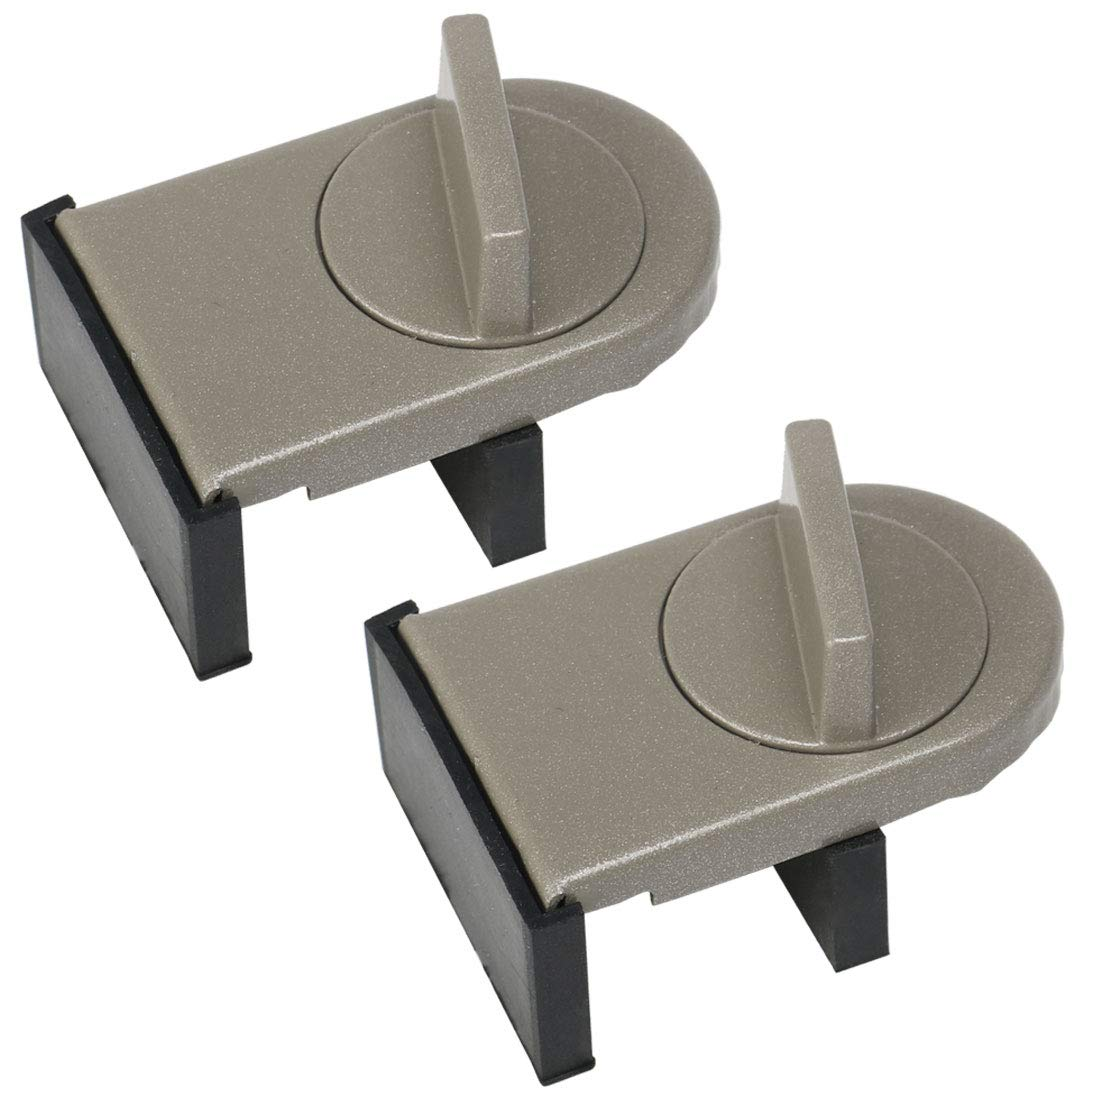 uxcell 2pcs Sliding Window Lock Metal No Tools Required Adjustable Door Window Transom Control Stopper, Brown